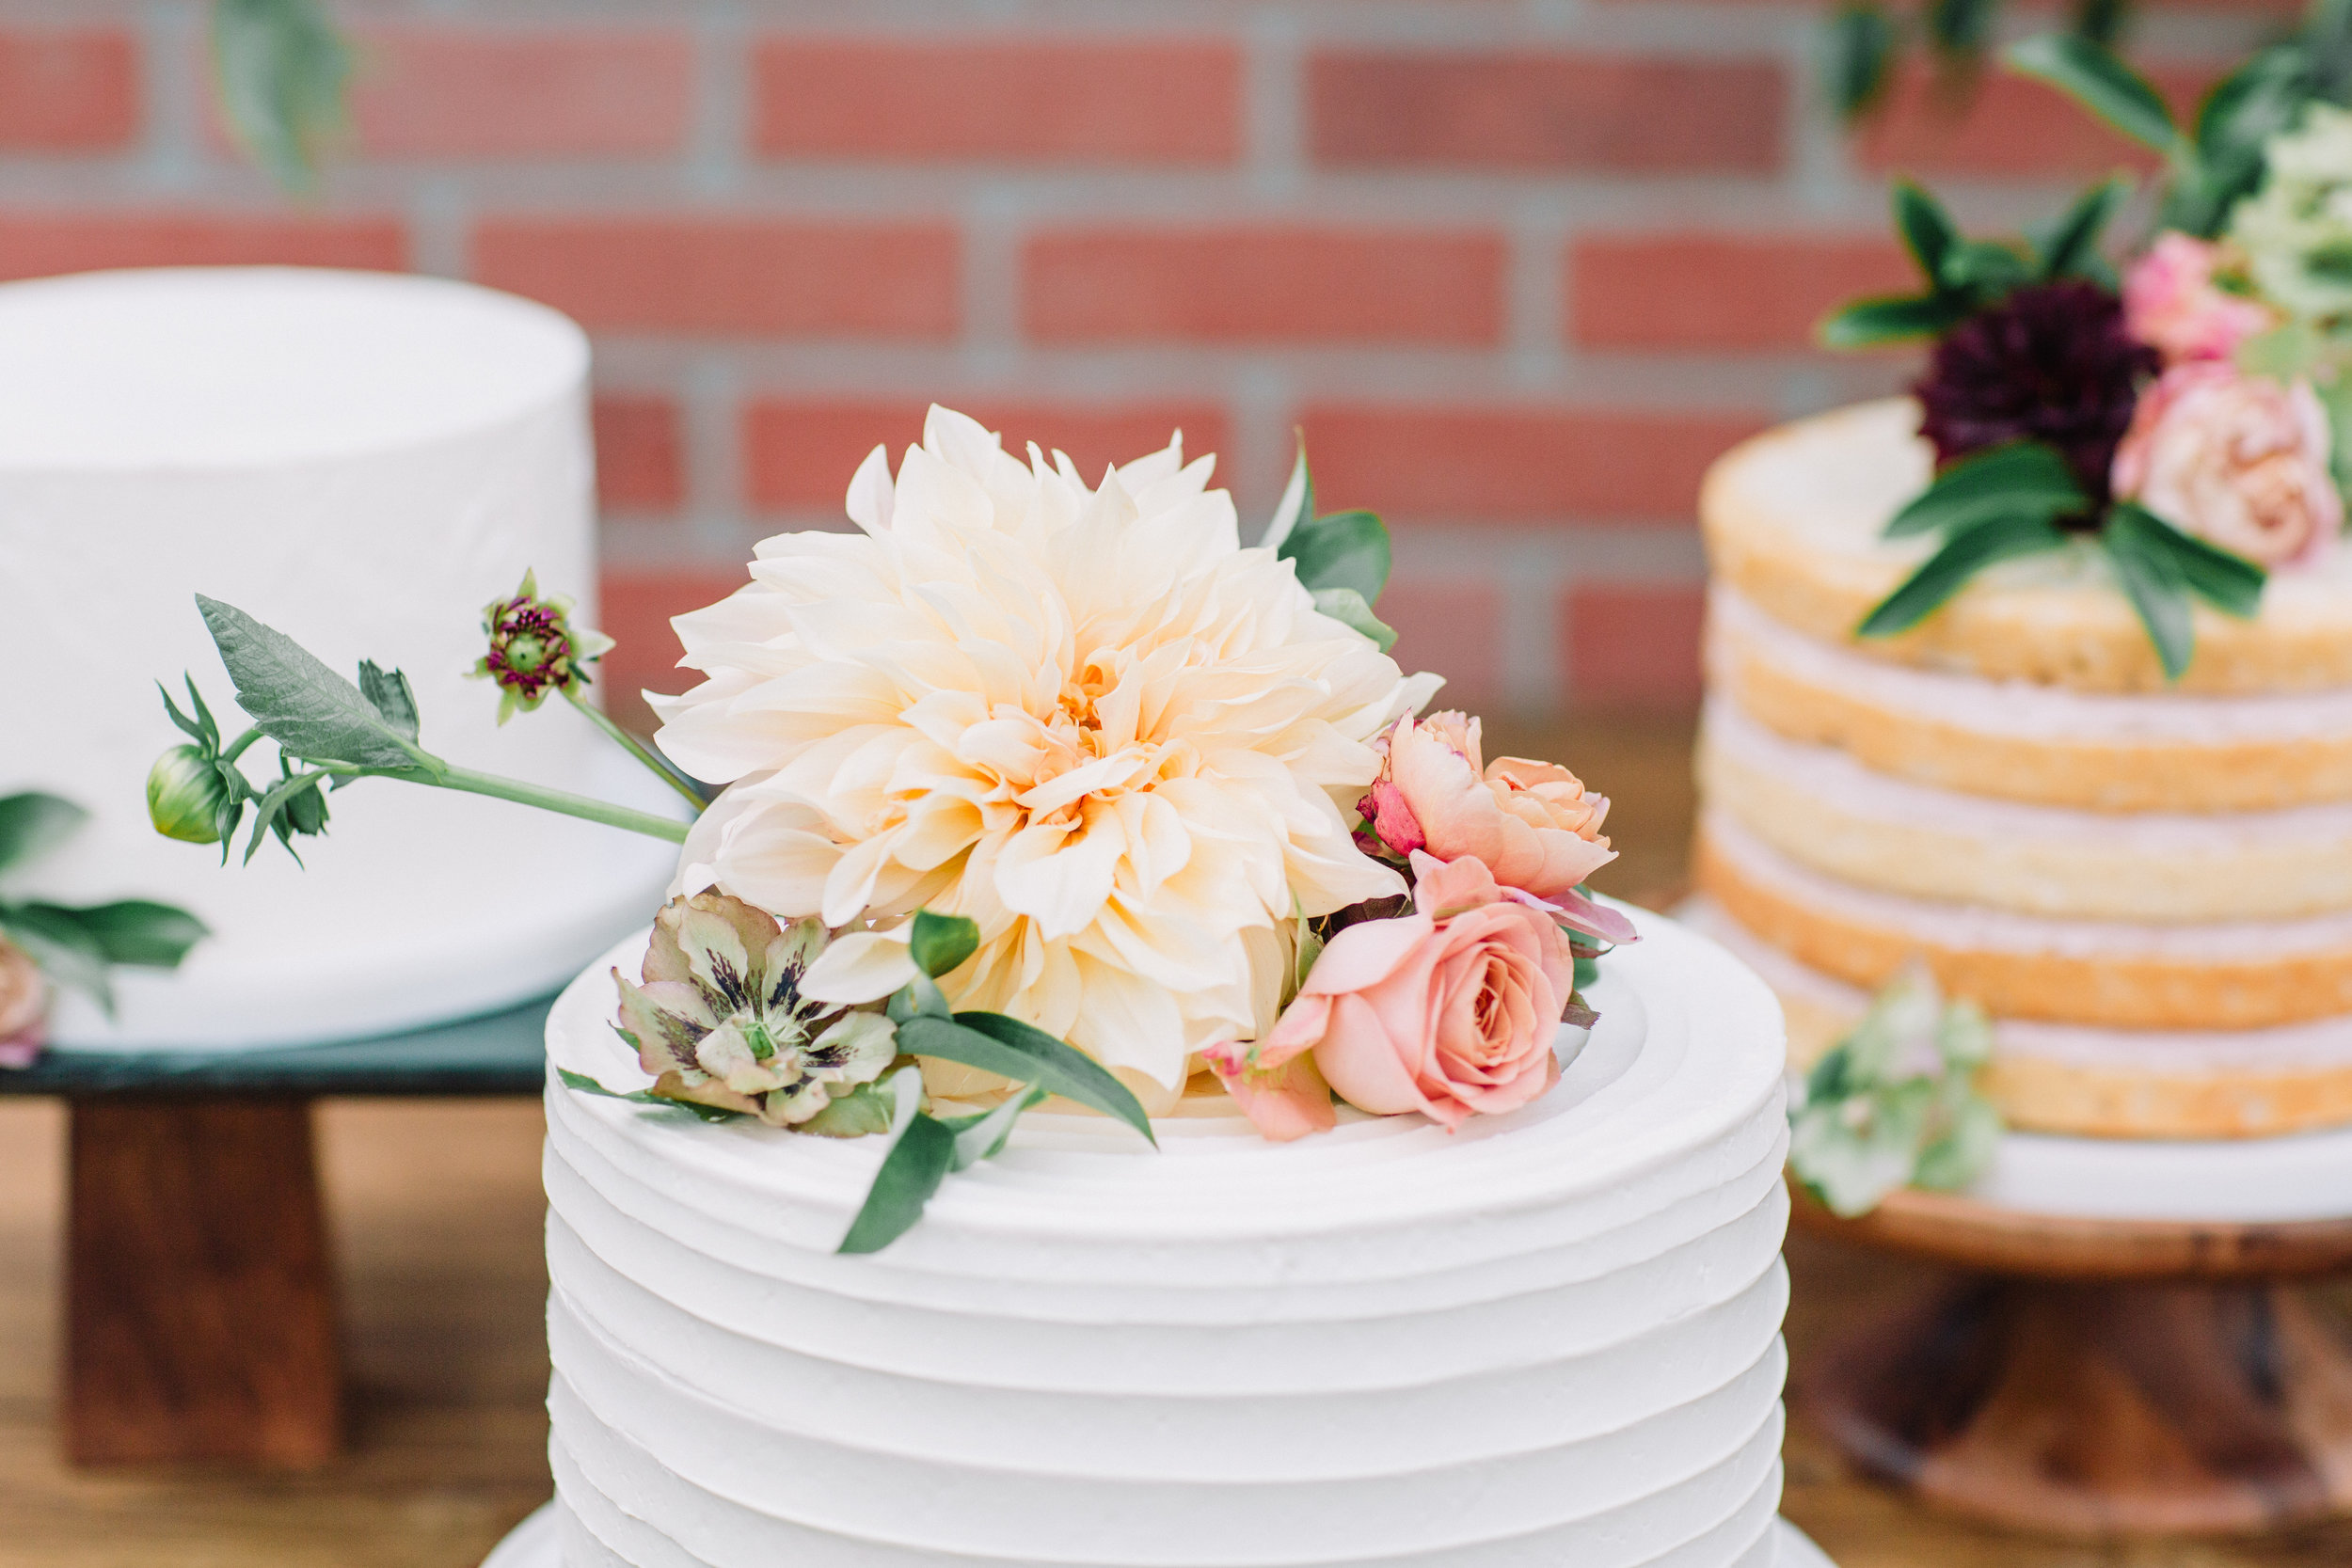 The Potted Pansy cake floral